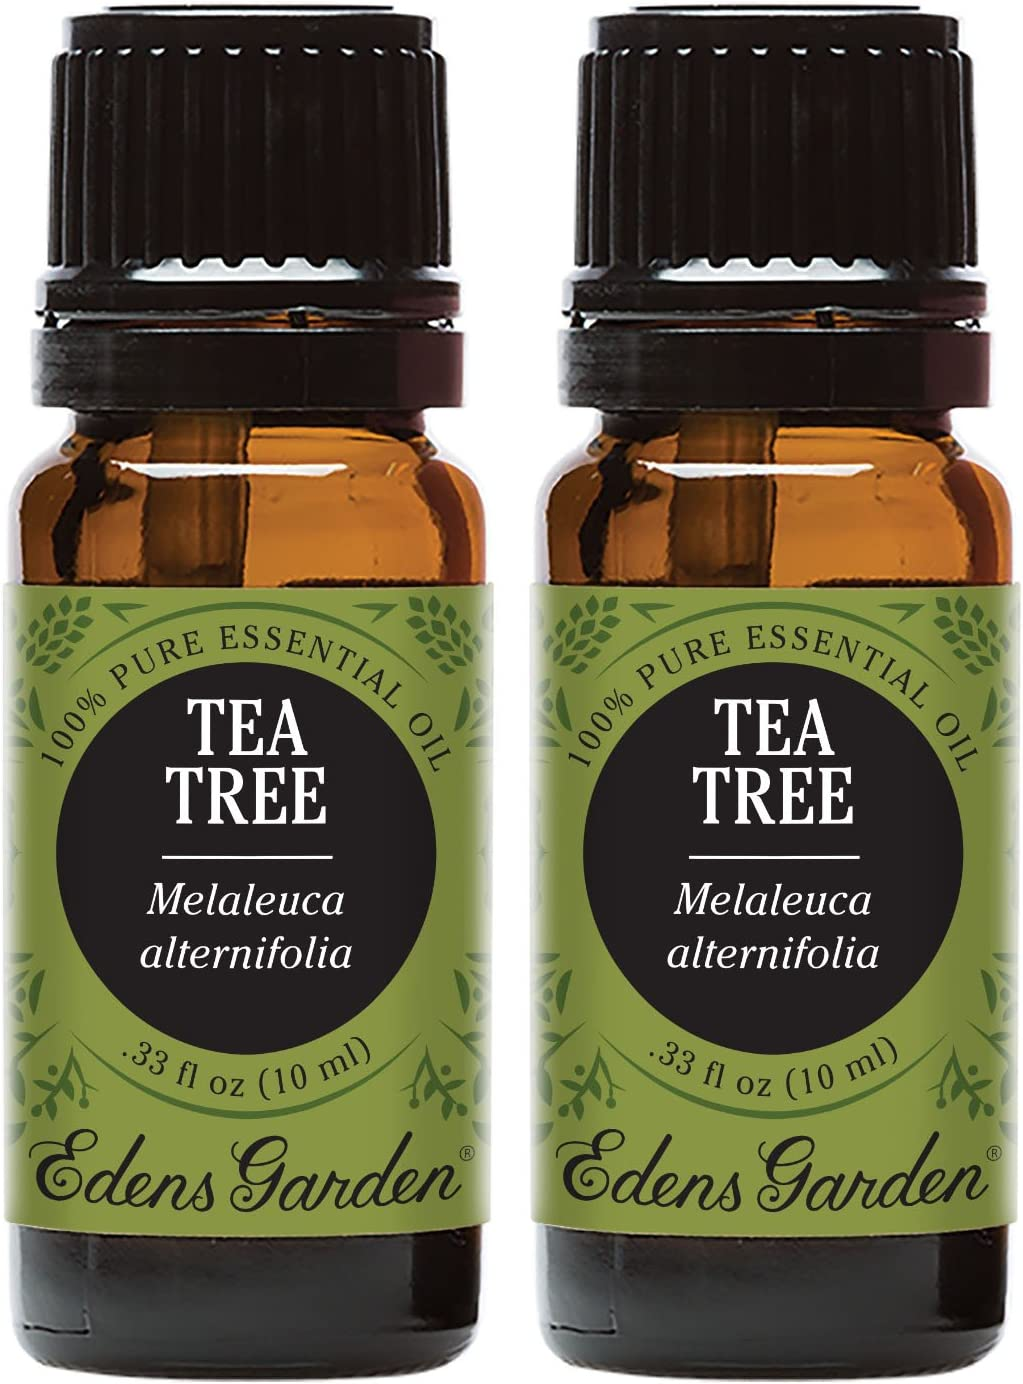 Edens Garden Tea Tree Essential Oil, 100% Pure Therapeutic Grade (Allergies & Inflammation) 10 ml Value Pack